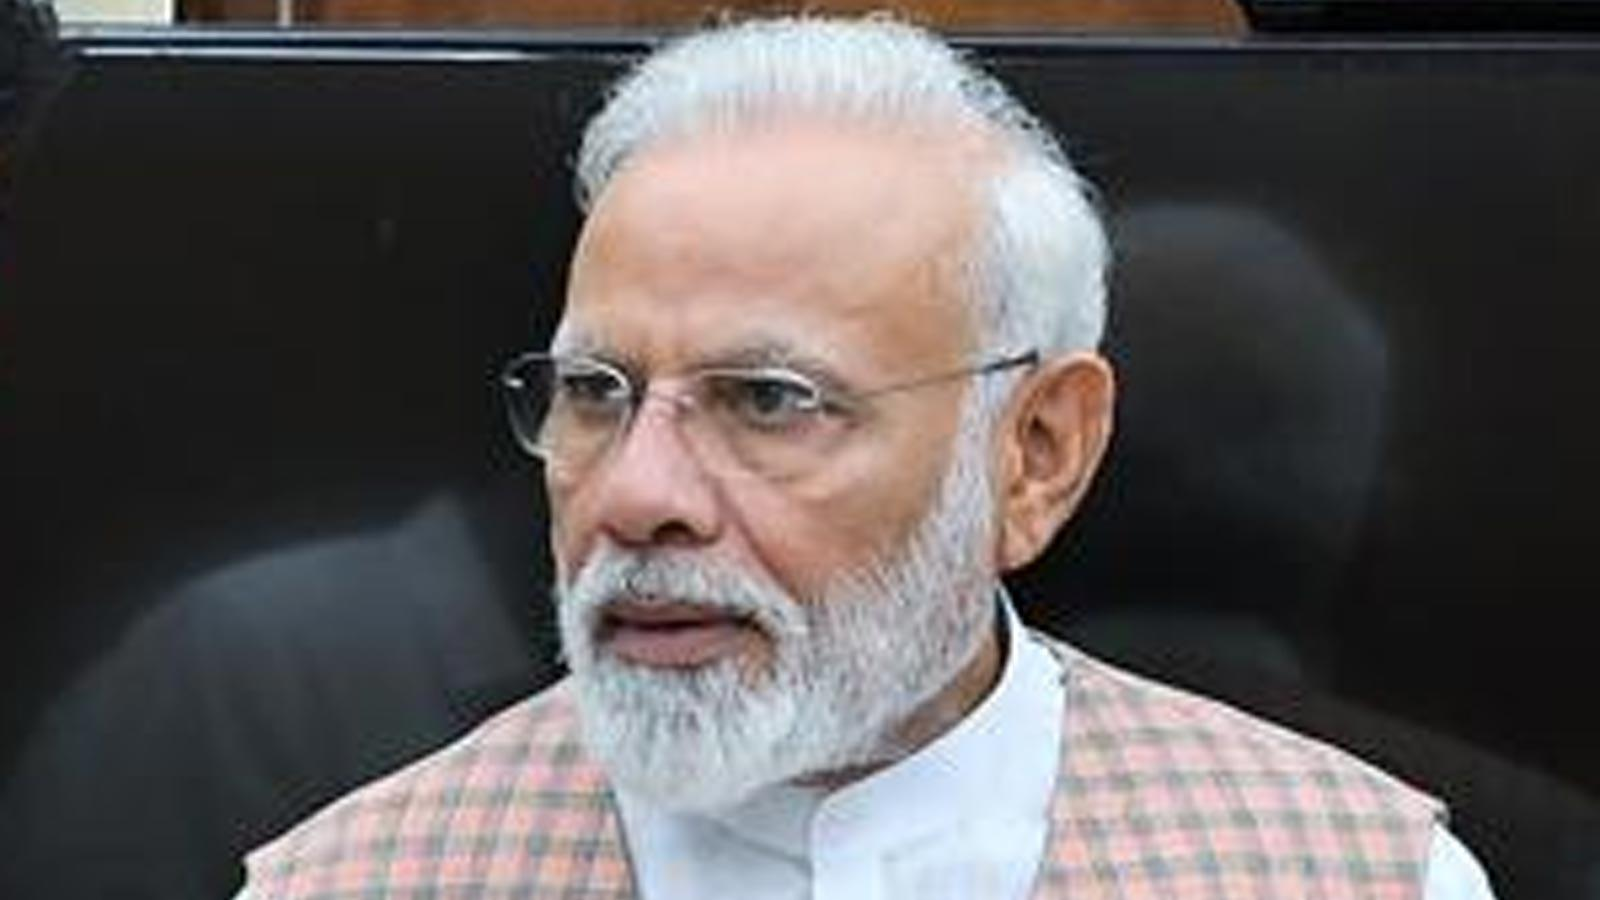 modi-2-0-sets-fast-pace-in-1st-50-days-says-report-card